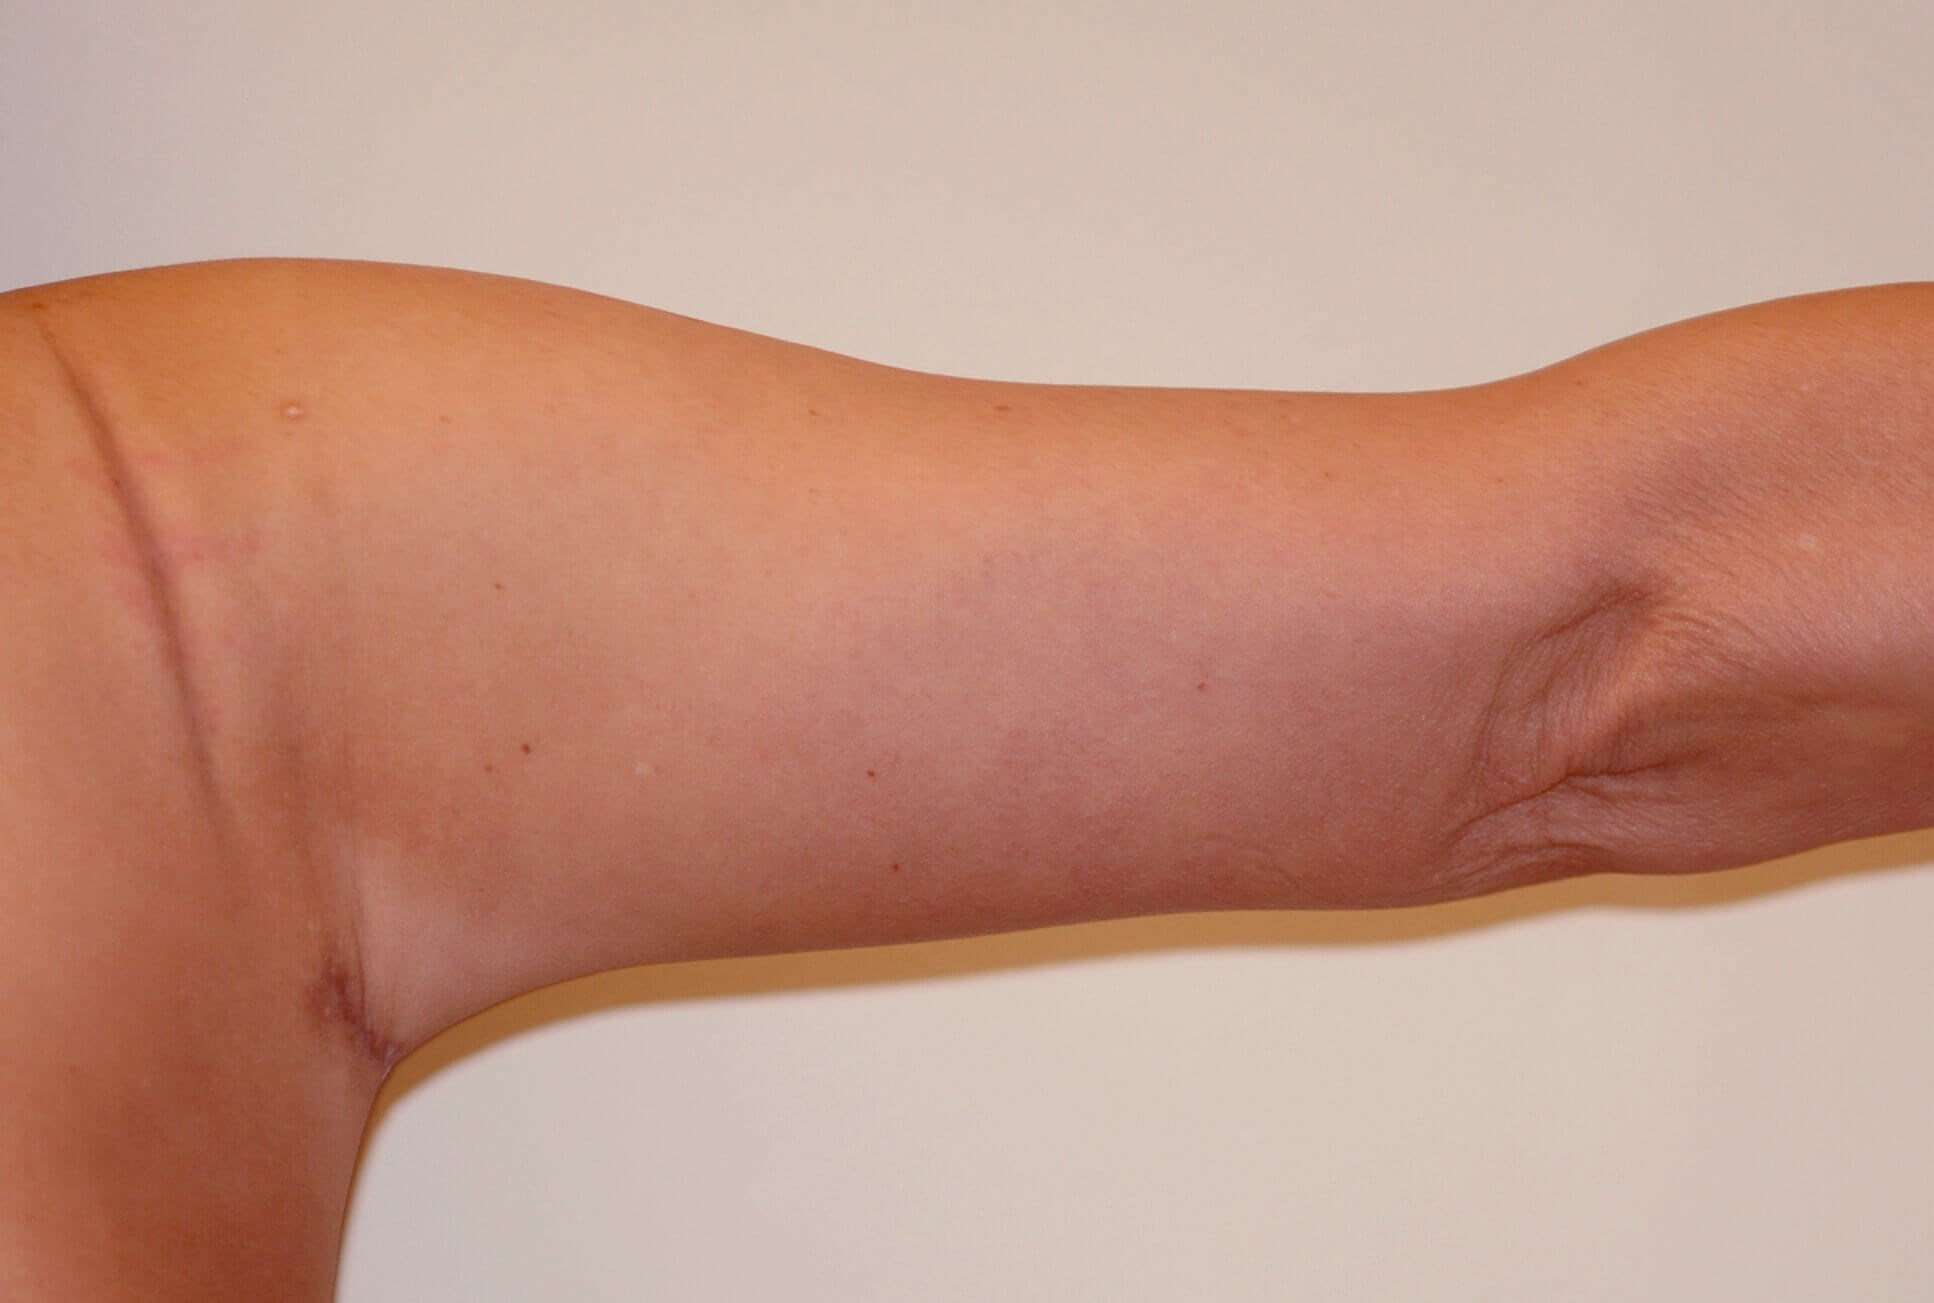 Right Arm, Posterior View After